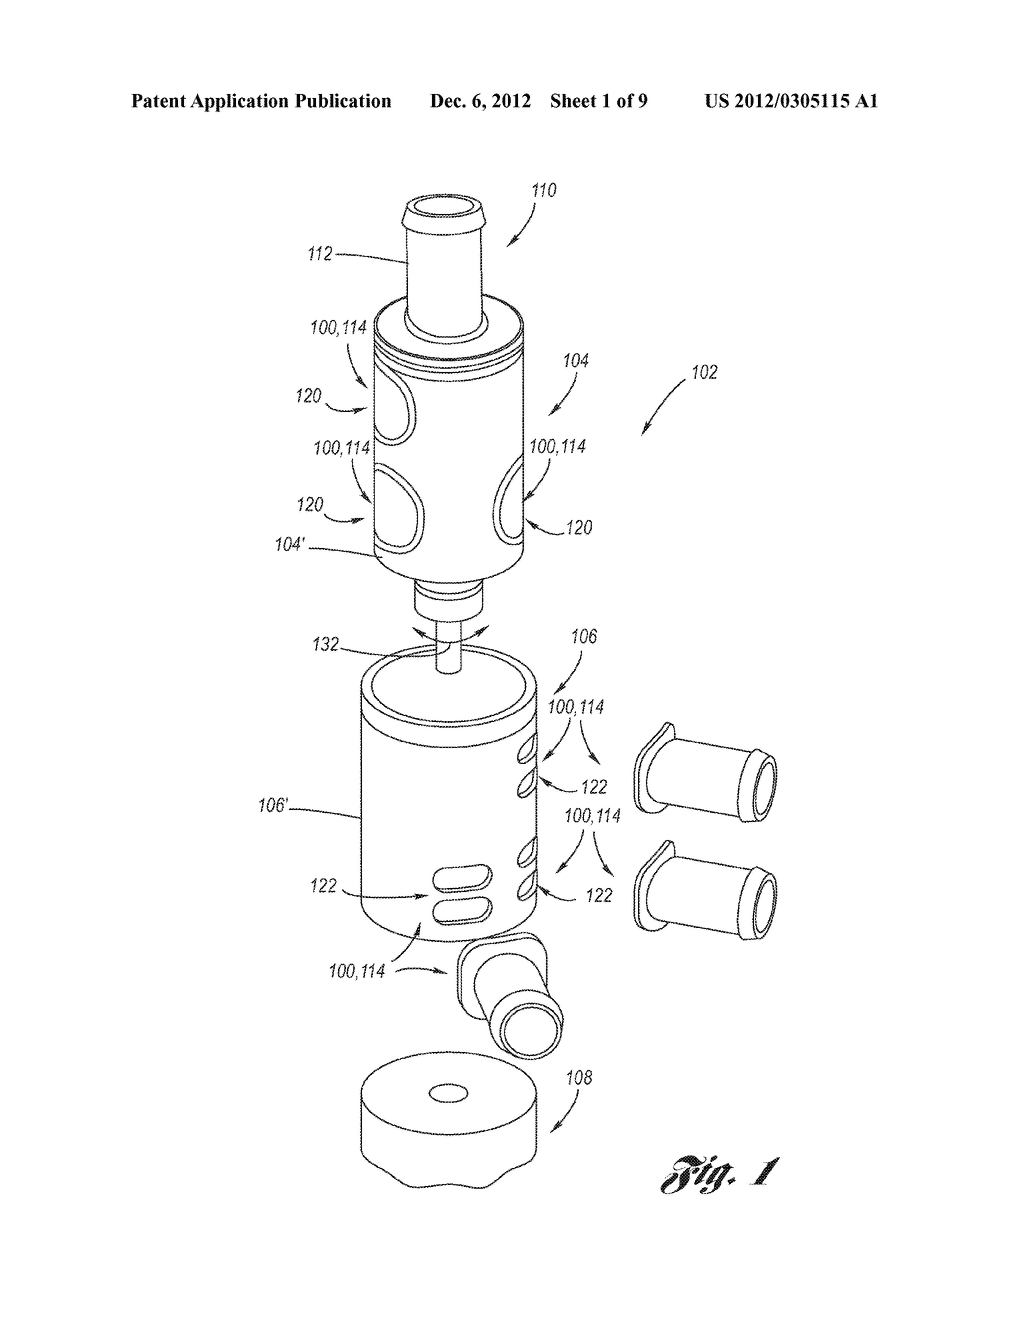 Fluid Valve Port Optimized for Robustness with Standard O-Ring Seal - diagram, schematic, and image 02